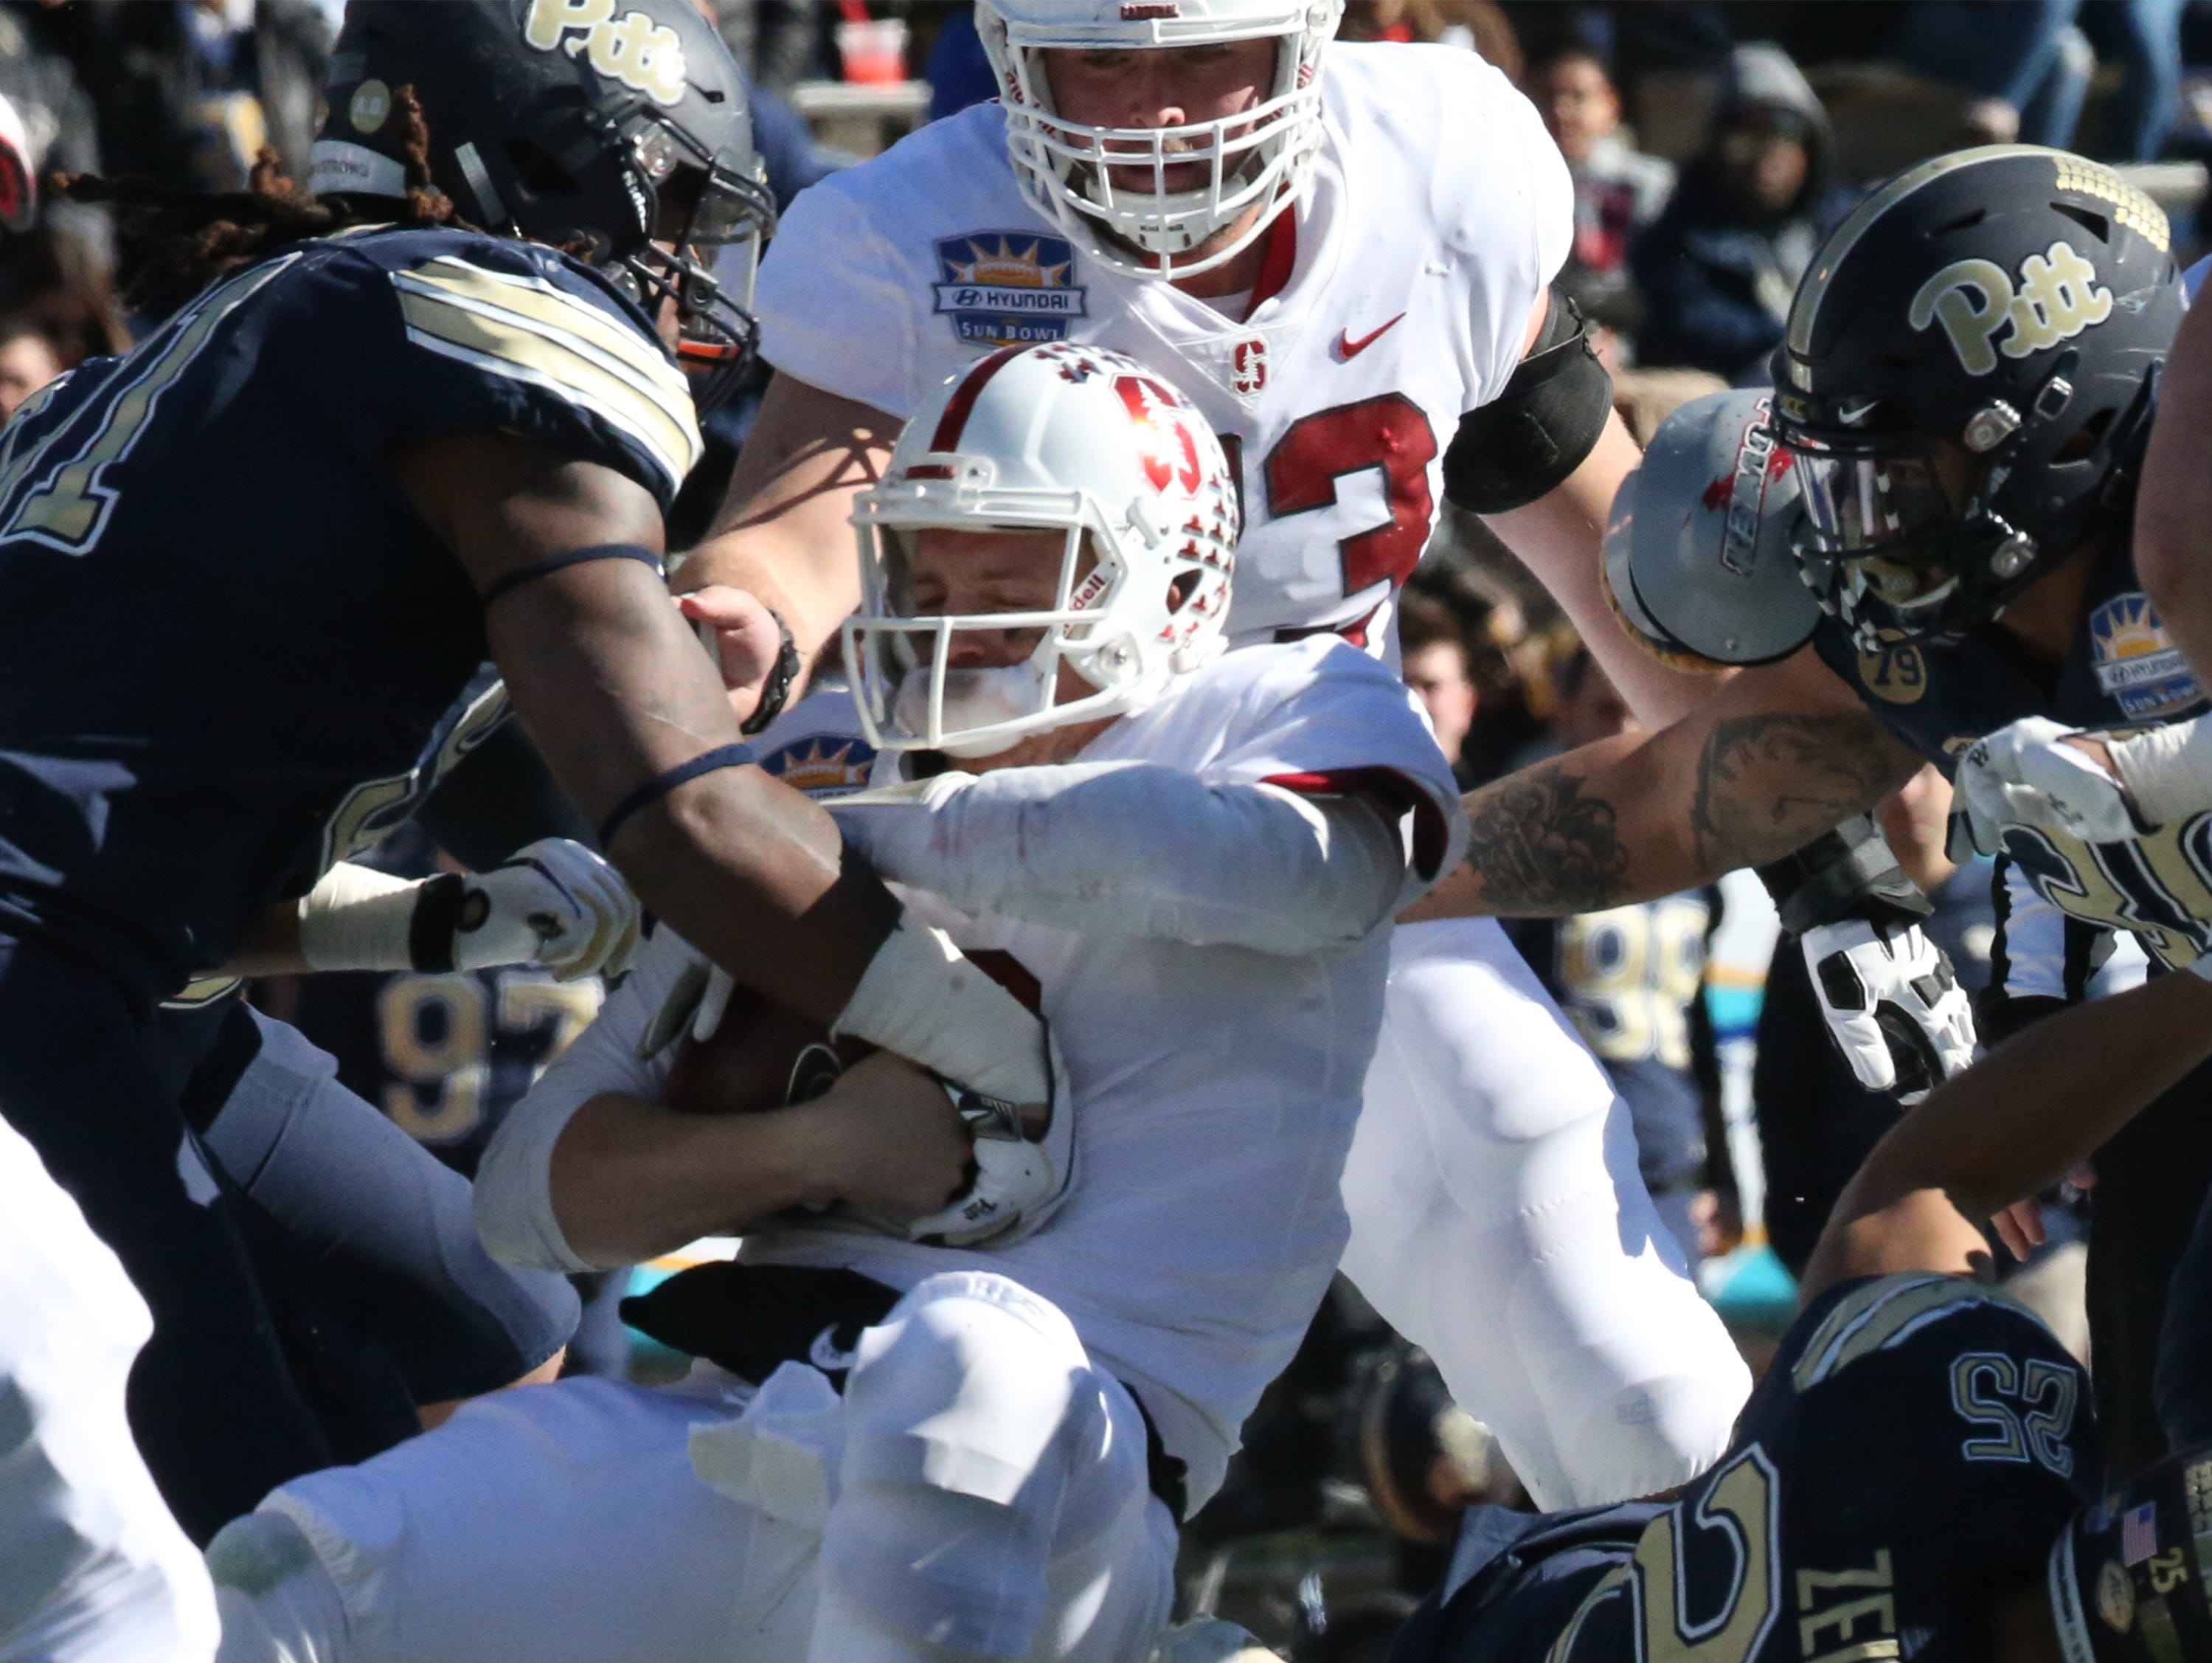 Stanford quarterback K.J. Costello, 3, is caught during a short keeper play against Pitt in the 85th Hyundai Sun Bowl game Monday.